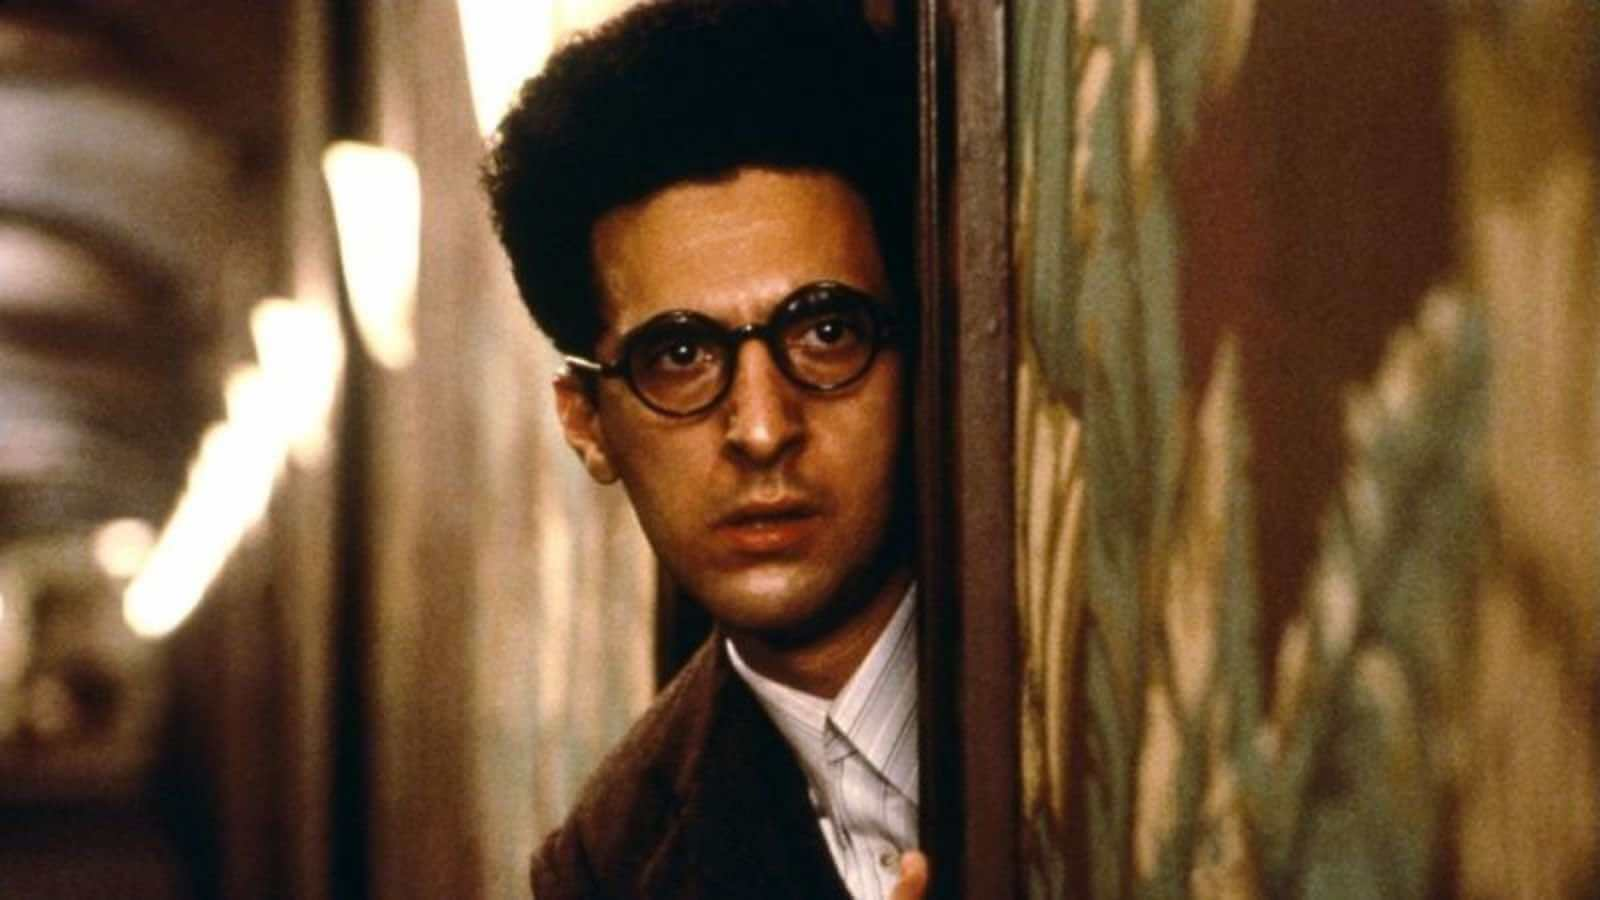 Dark Comedy Movies - Barton Fink